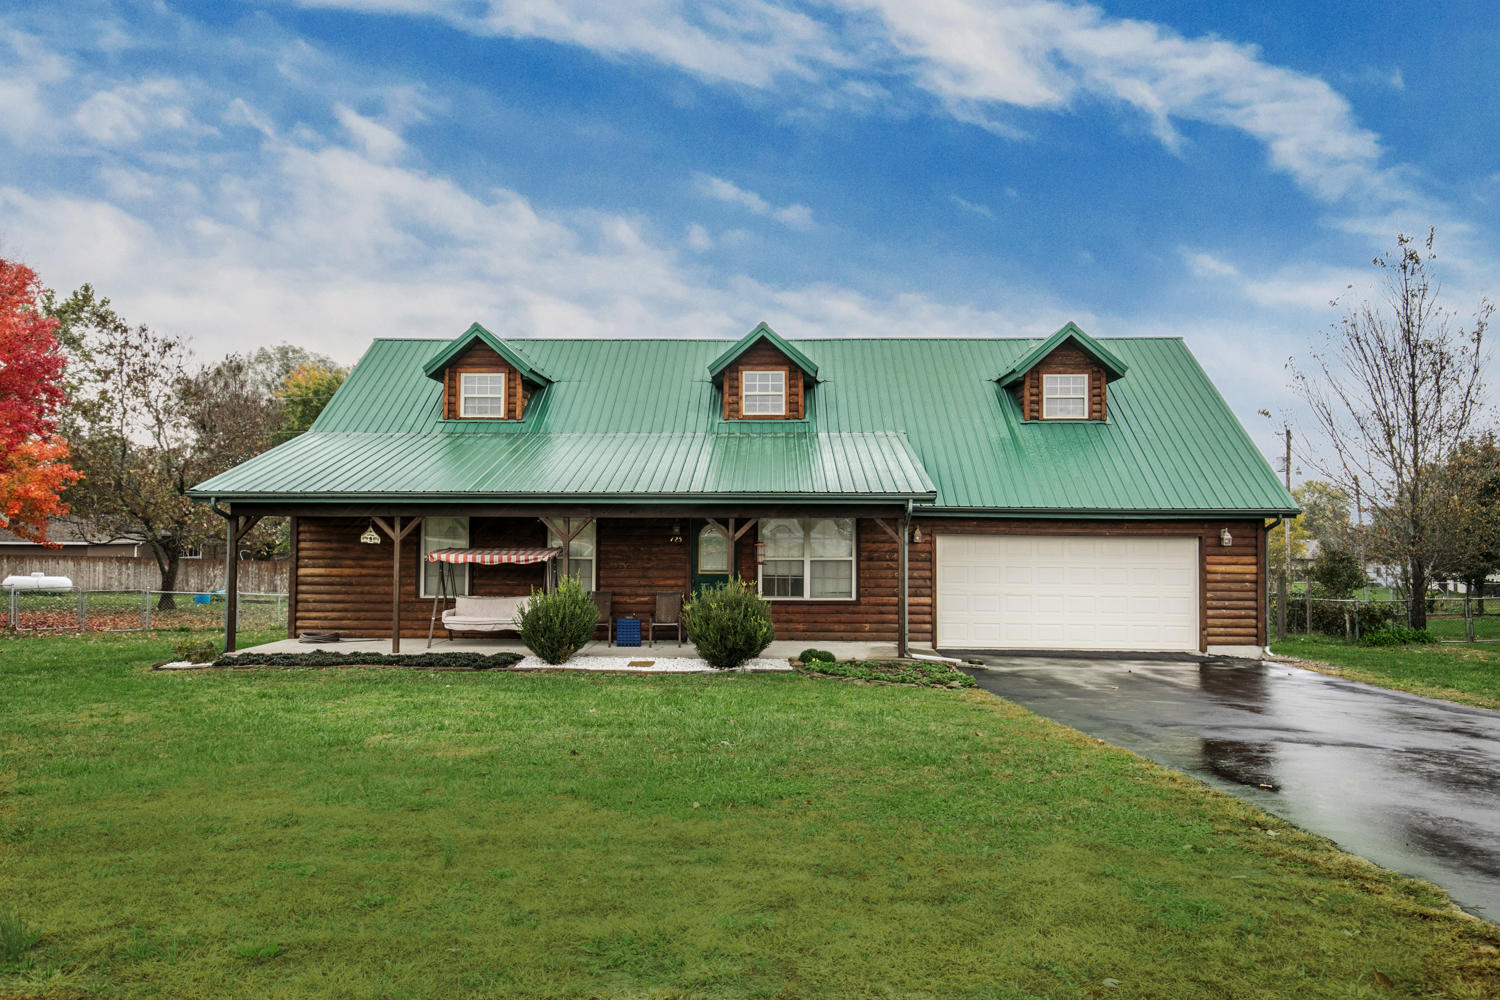 725 State Hwy Pp Sparta, MO 65753